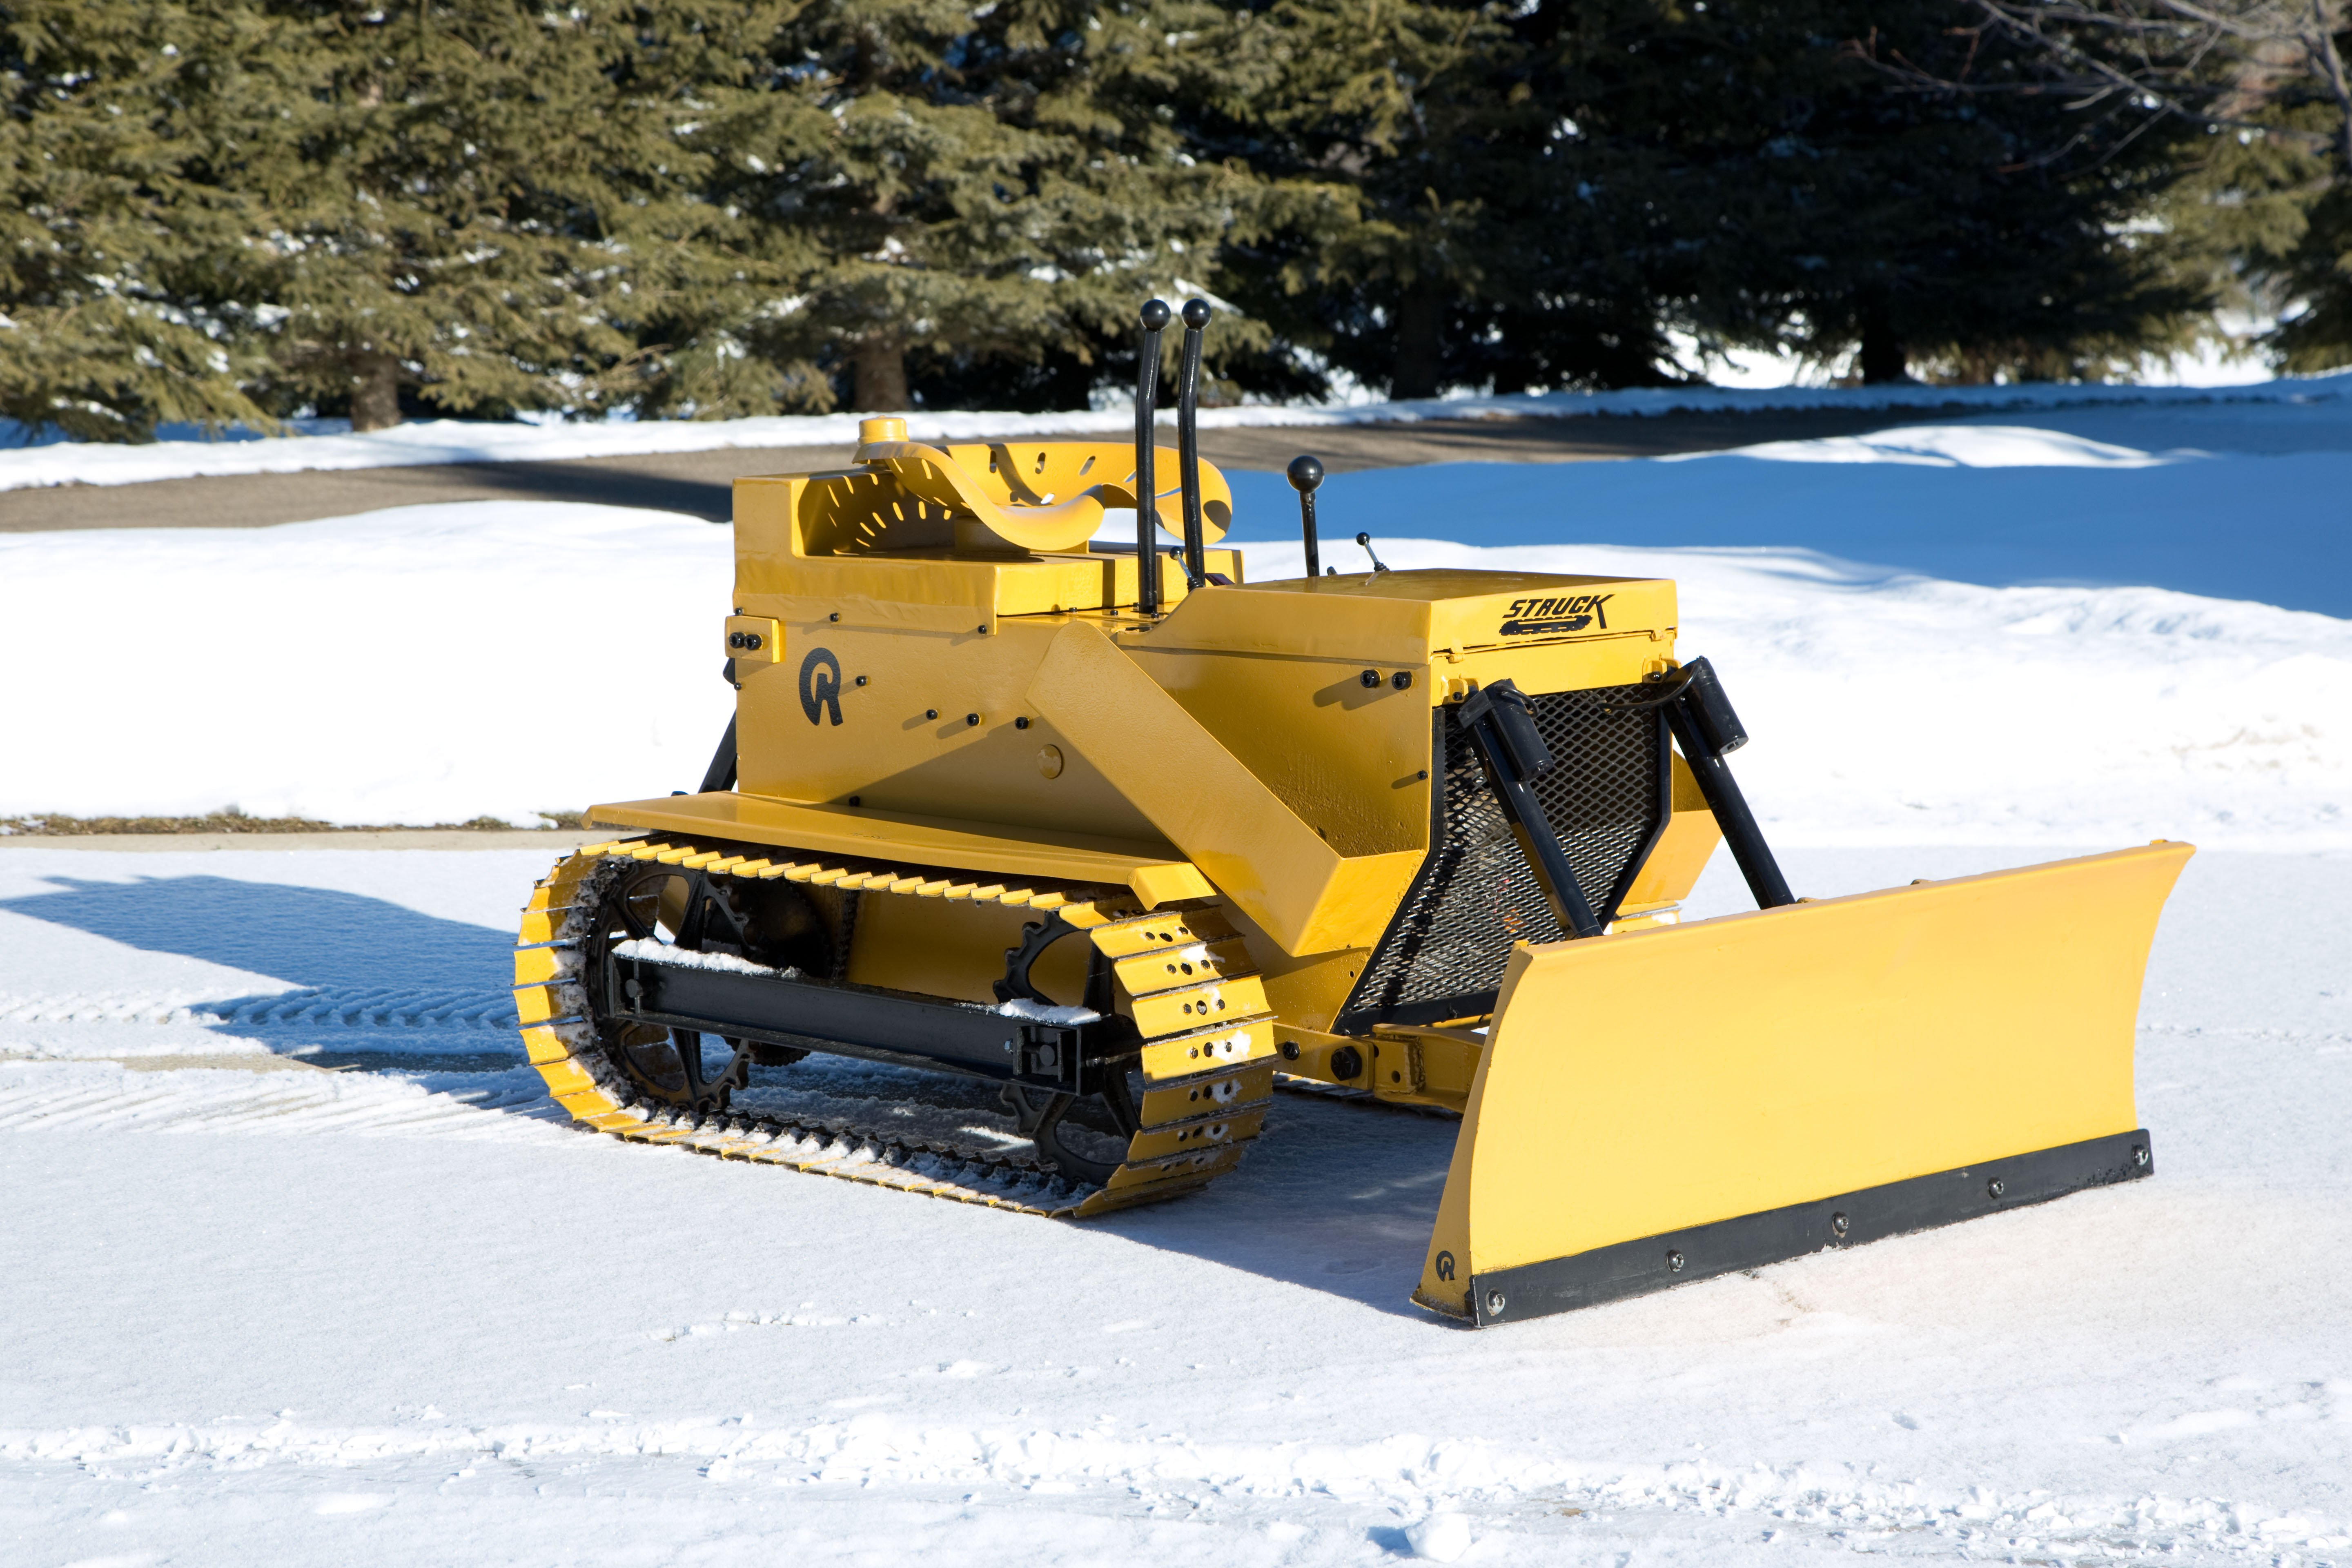 Images of Smallest Bulldozer - #rock-cafe